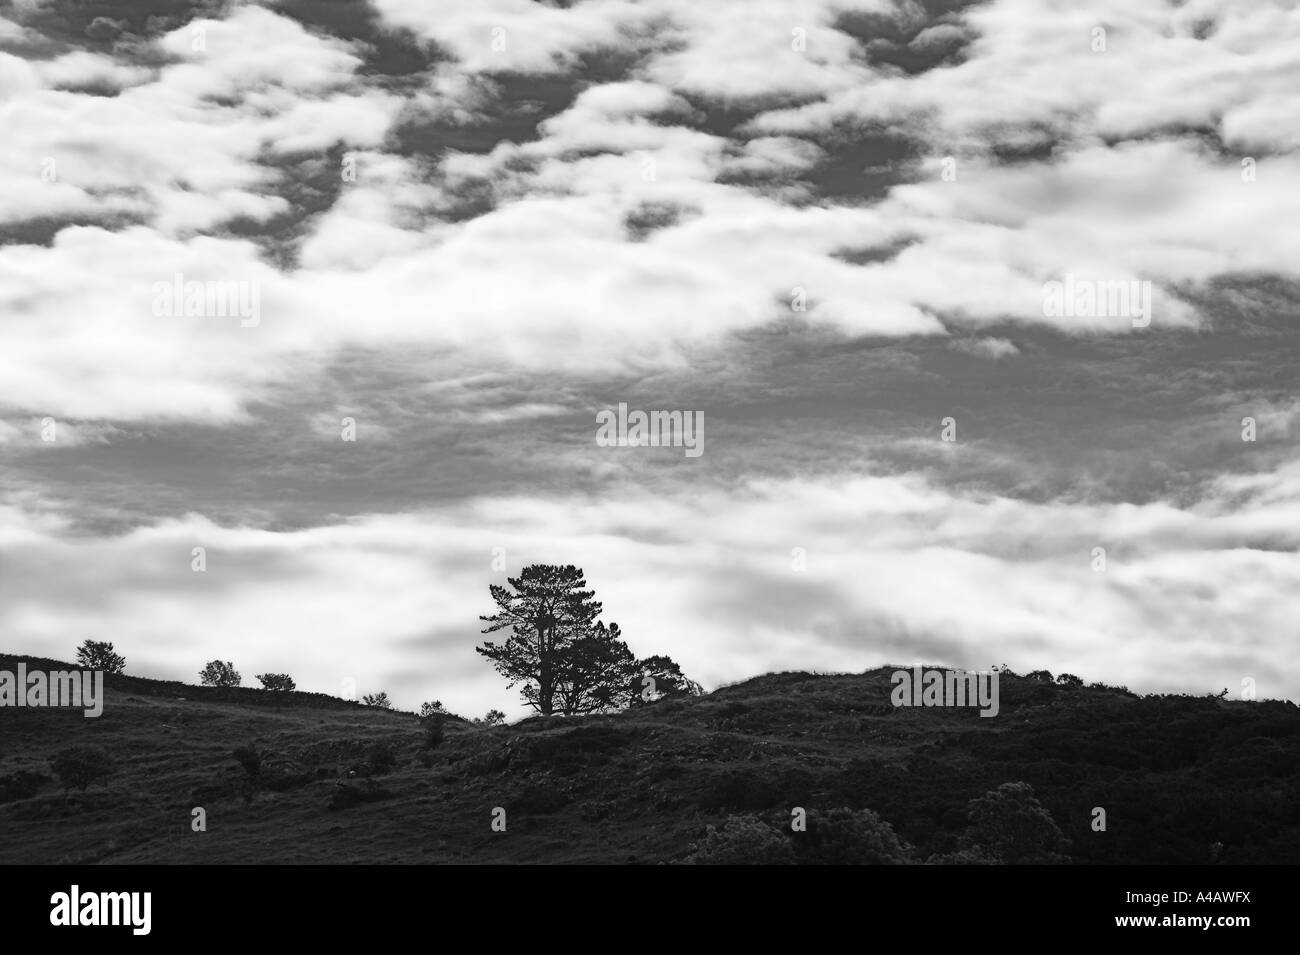 skyline silhouette Welsh mountain Black and White - Stock Image